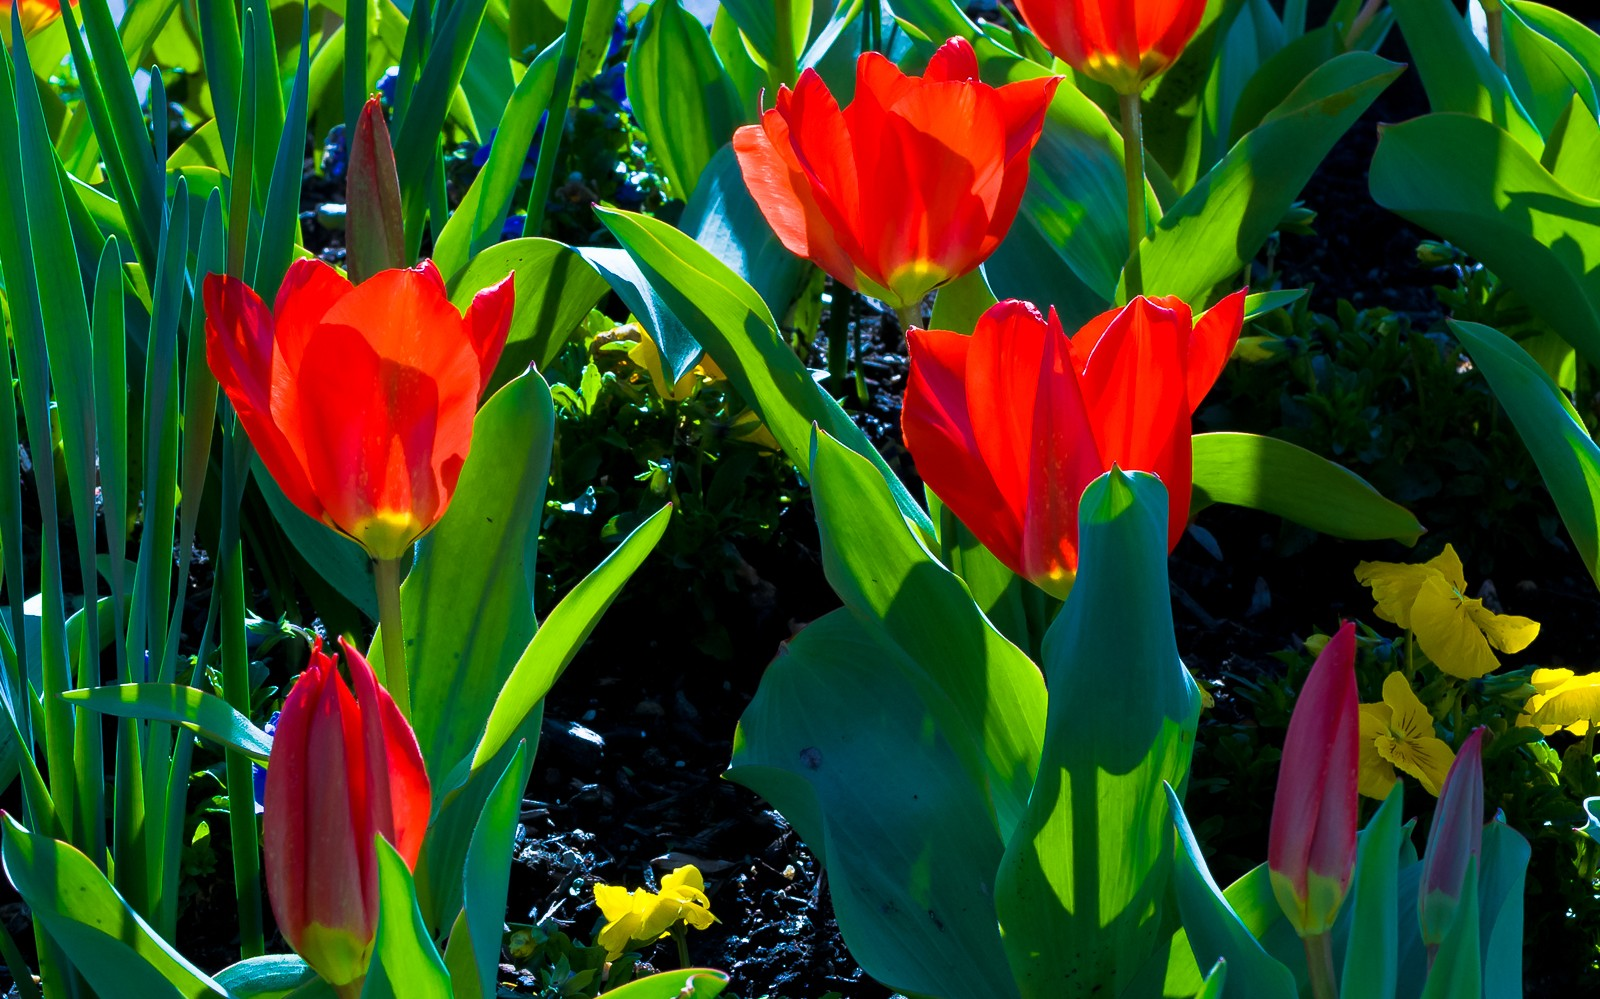 red-tulips-6839